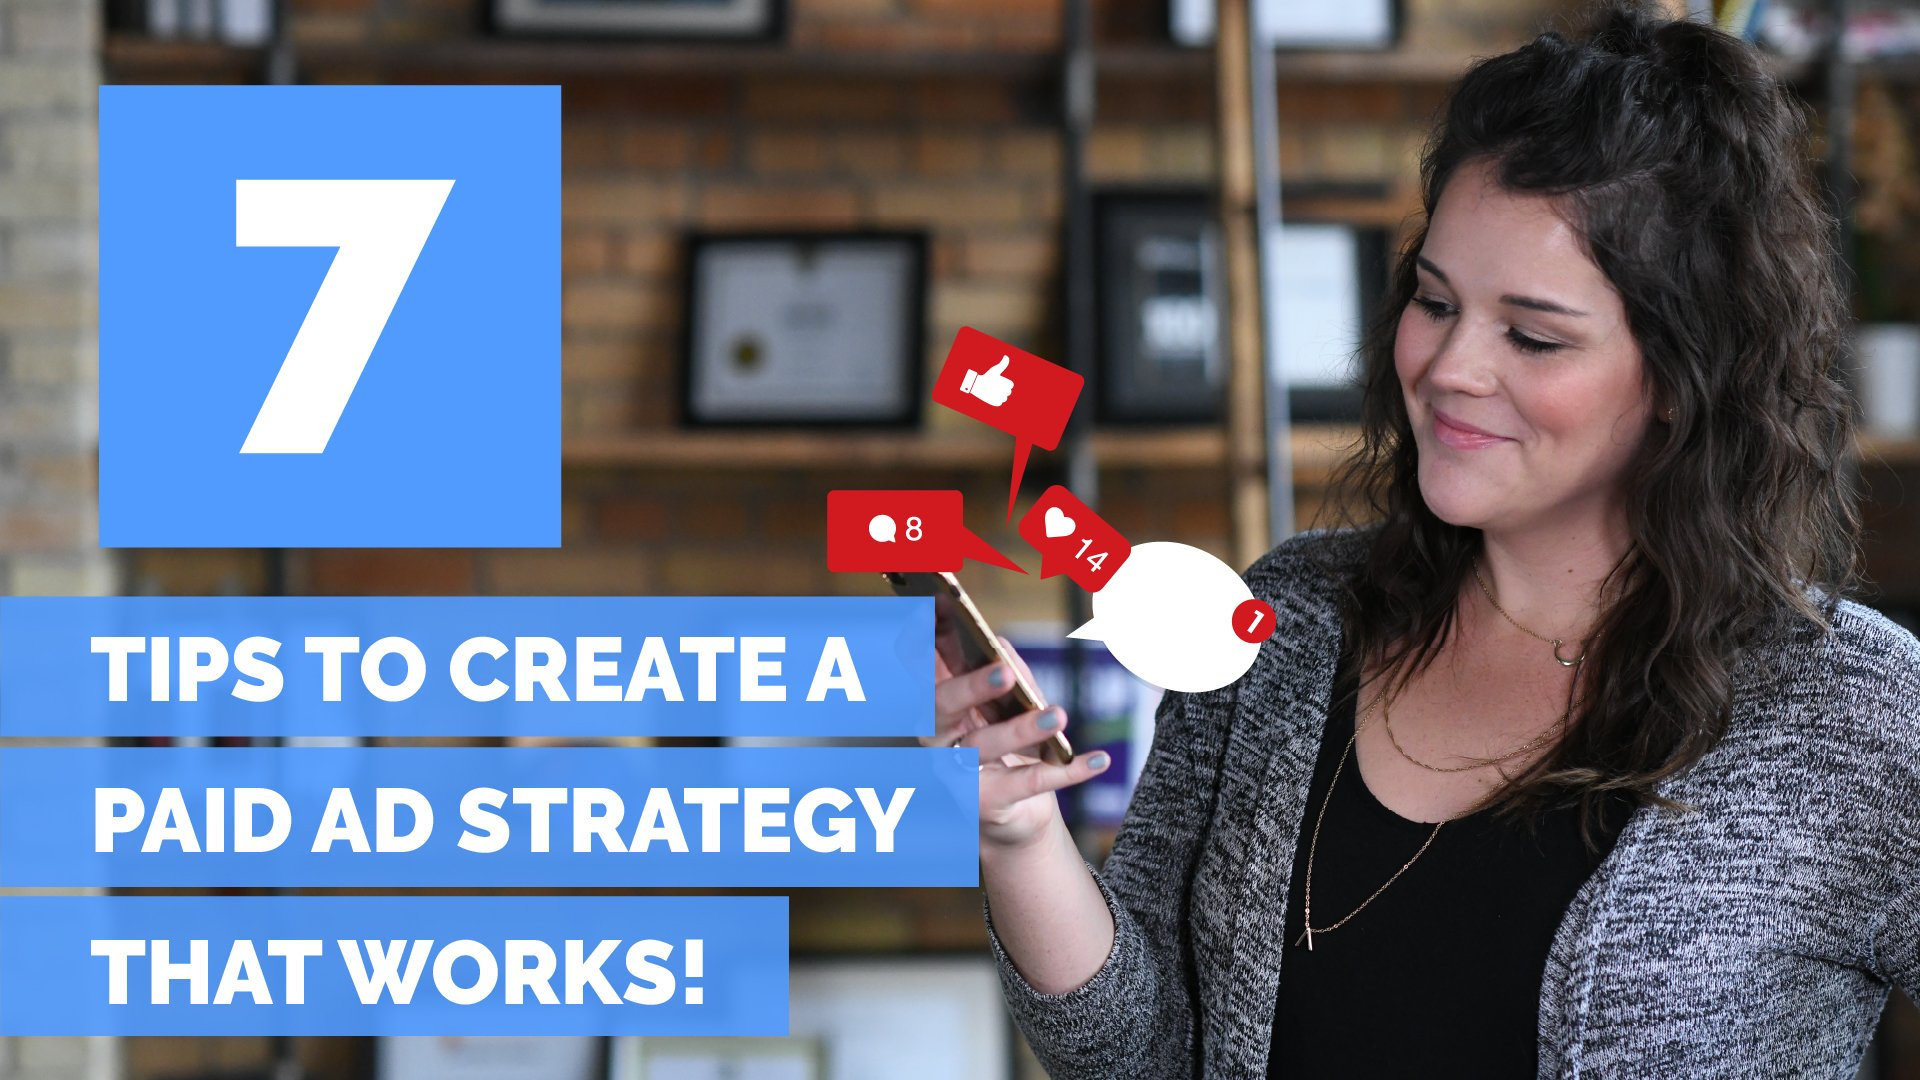 7 Tips to Create a Paid Ad Strategy That Works